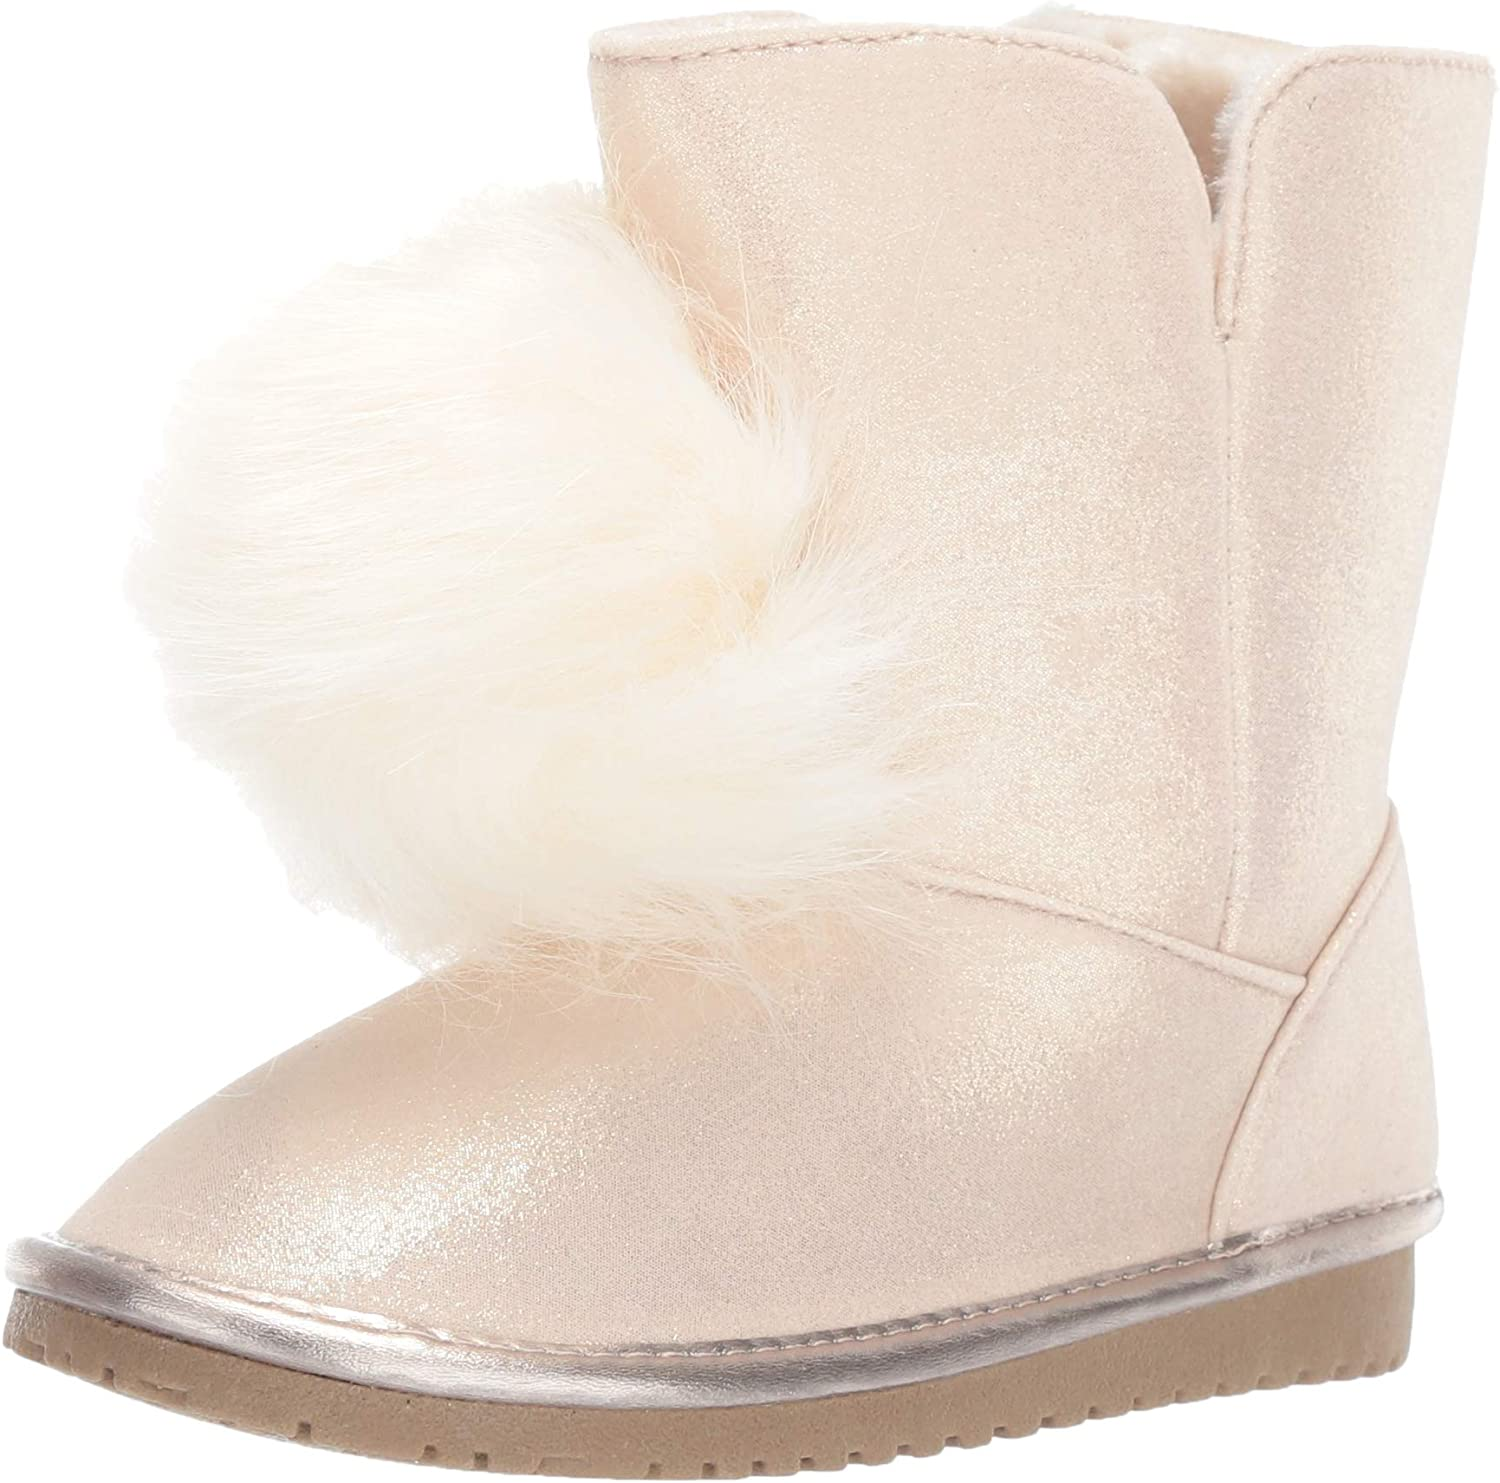 The Children's Place Virginia Beach Mall Unisex-Child Boot Faux Fashion Sherling Max 44% OFF